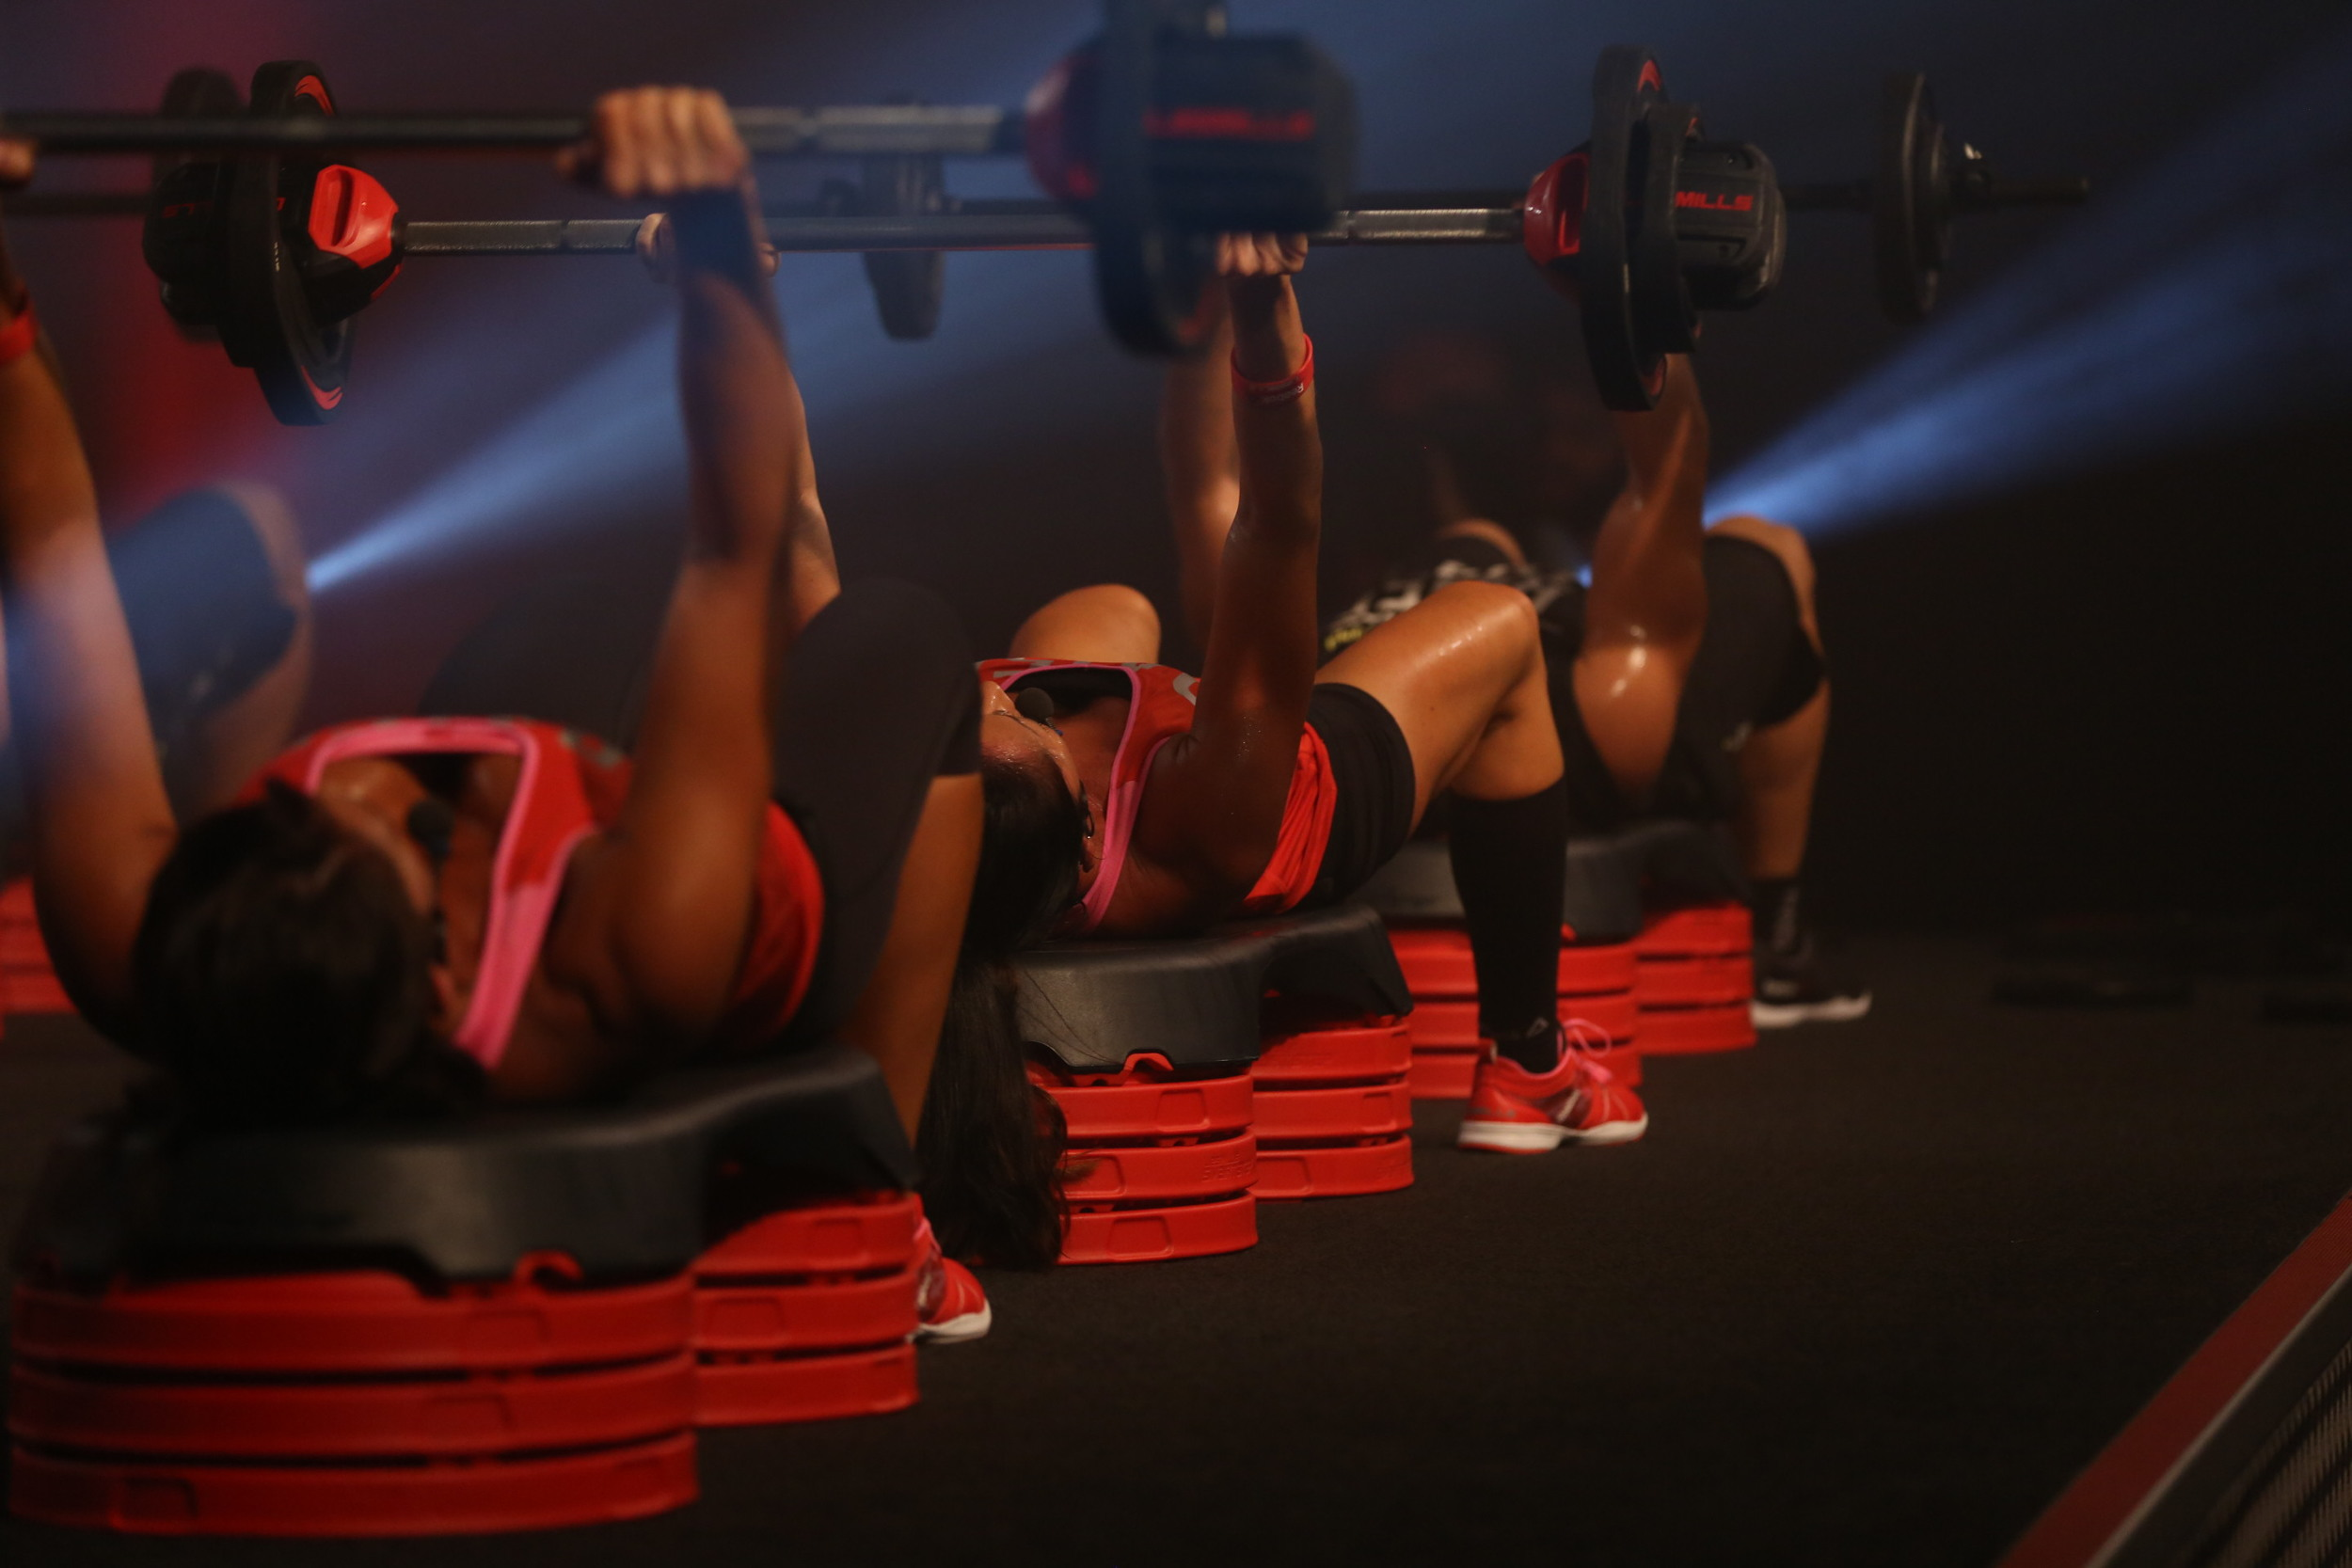 BODYPUMP™ is for anyone looking to get lean, toned and fit – fast.  Using light to moderate weights with lots of repetition, BODYPUMP gives you a total body workout. It will burn up to 590 calories*. Instructors will coach you through the moves and techniques pumping out encouragement, motivation and great music – helping you achieve much more than on your own! You'll leave the class feeling challenged and motivated, ready to come back for more. At Seacrest Fitness Co., we use the official Les Mills Smart Tech equipment for your PUMP pleasure!